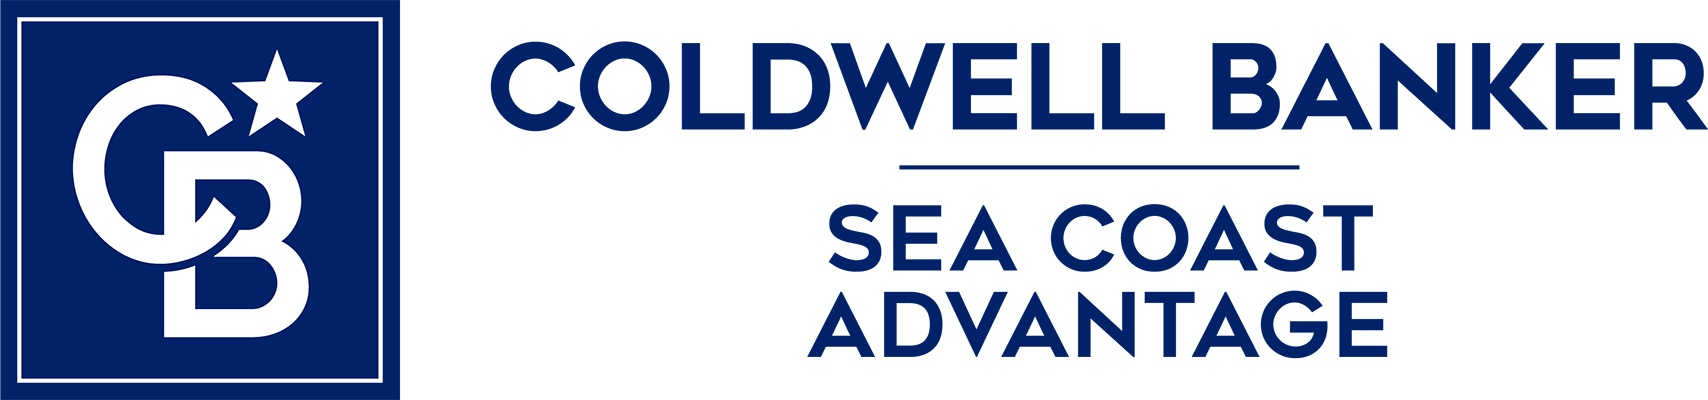 Meredith Merrill - Coldwell Banker Sea Coast Advantage Realty